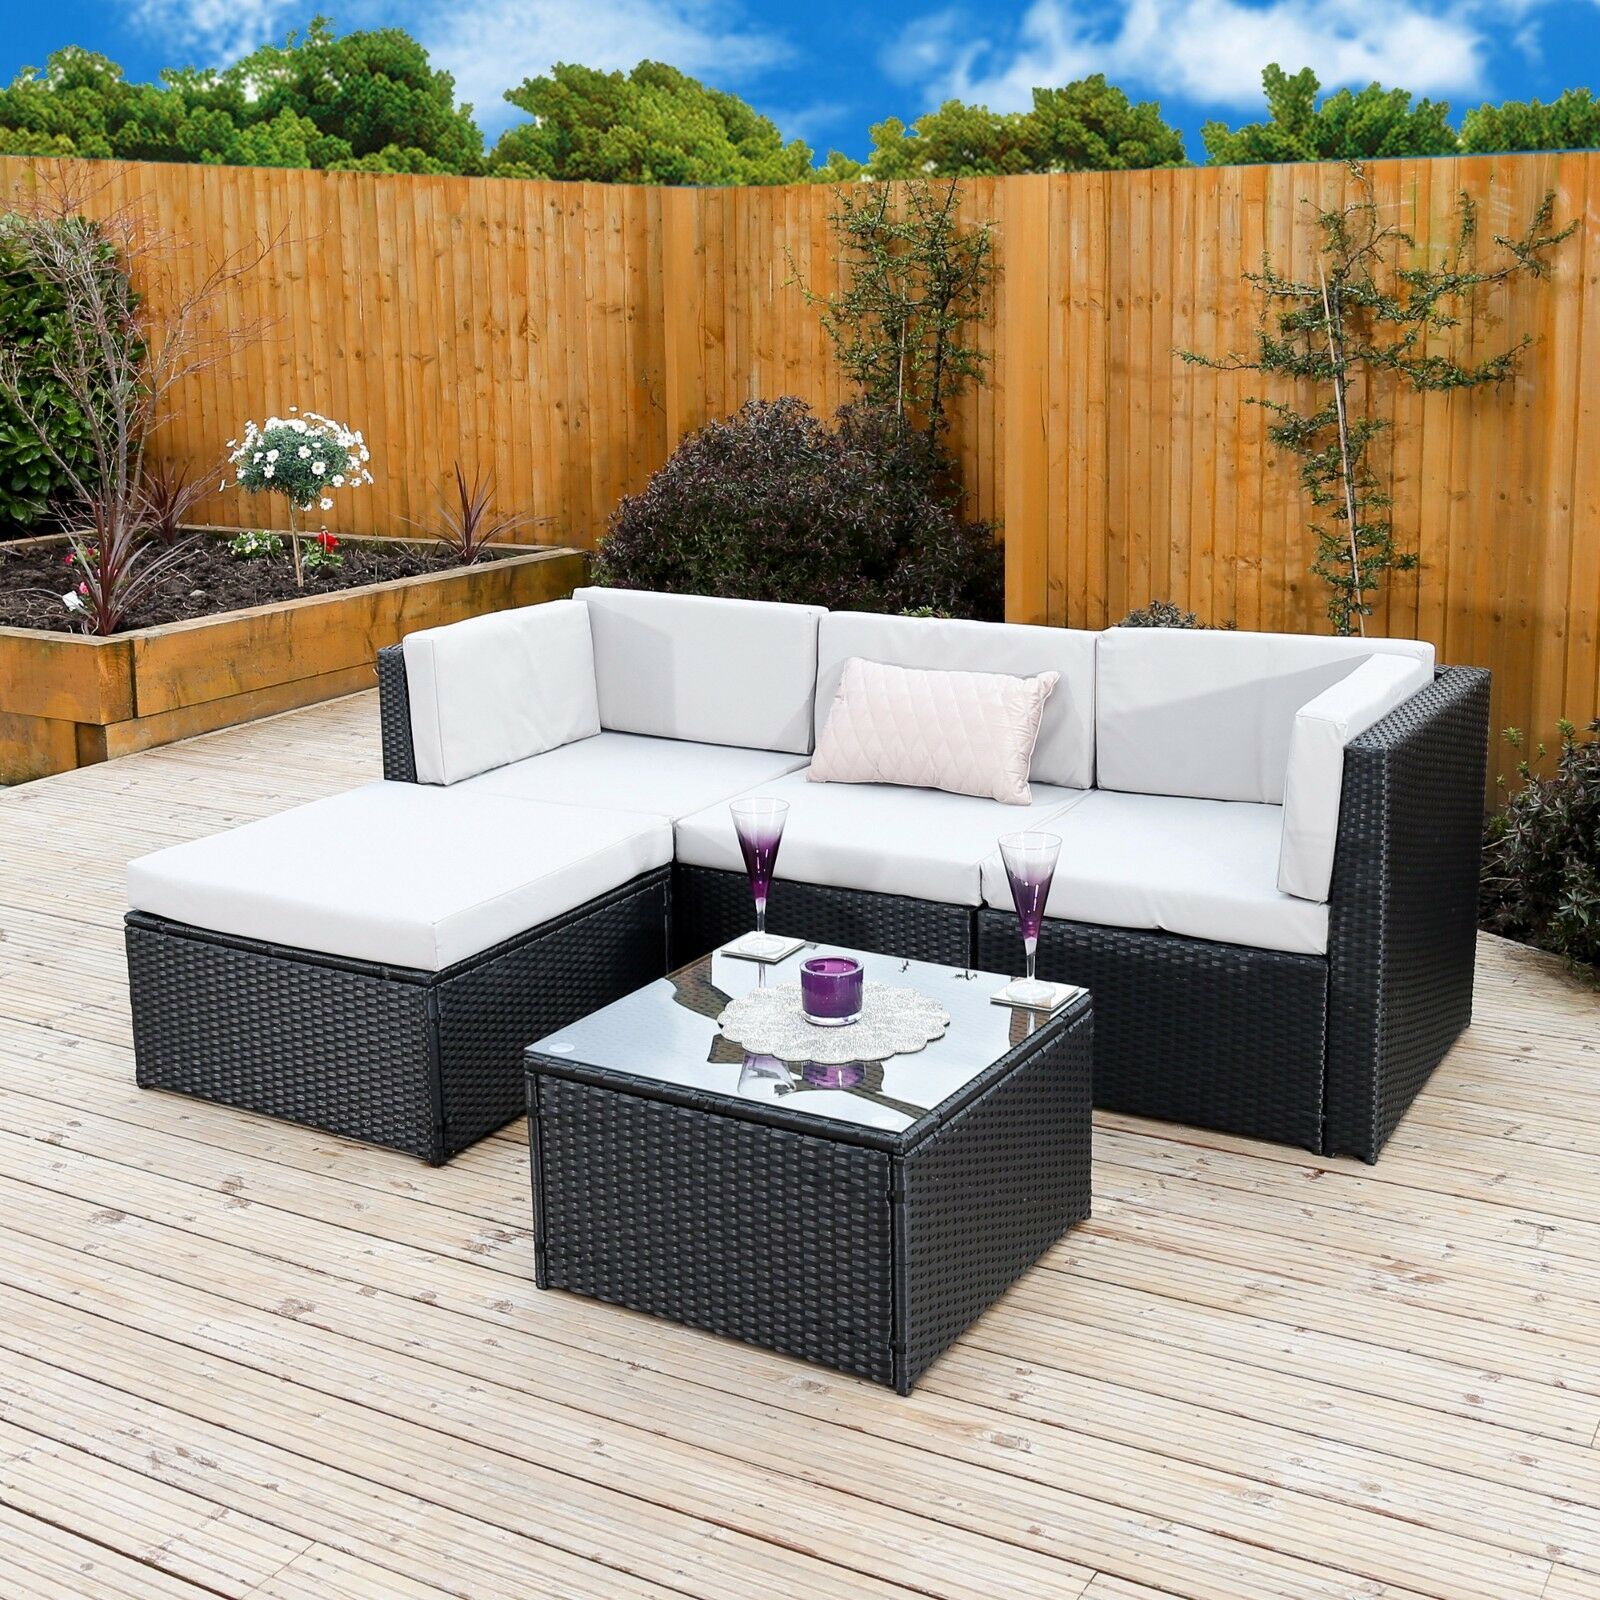 Modular Black Rattan Weave Garden Furniture Sofa Table Set Free Outdoor Cover